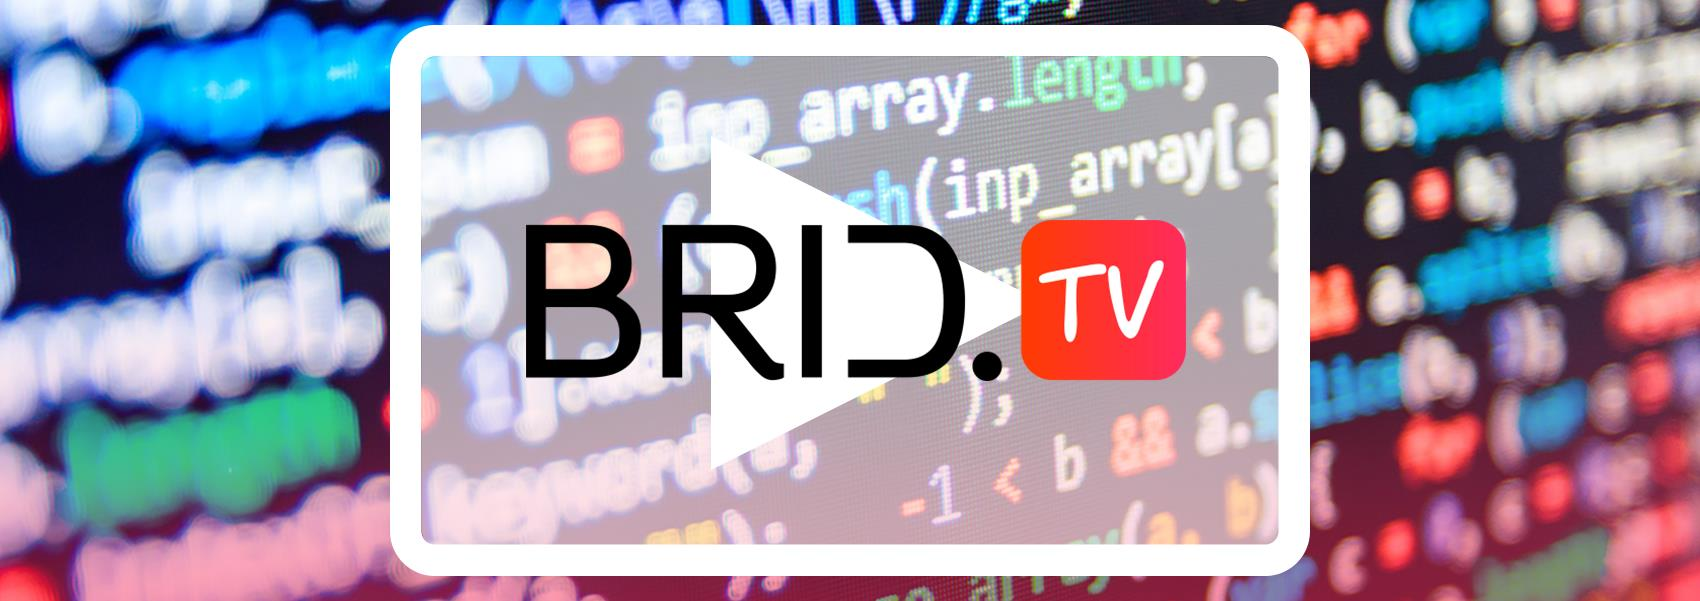 Async Embed Code Support for BridTV Video Player and Outstream Units